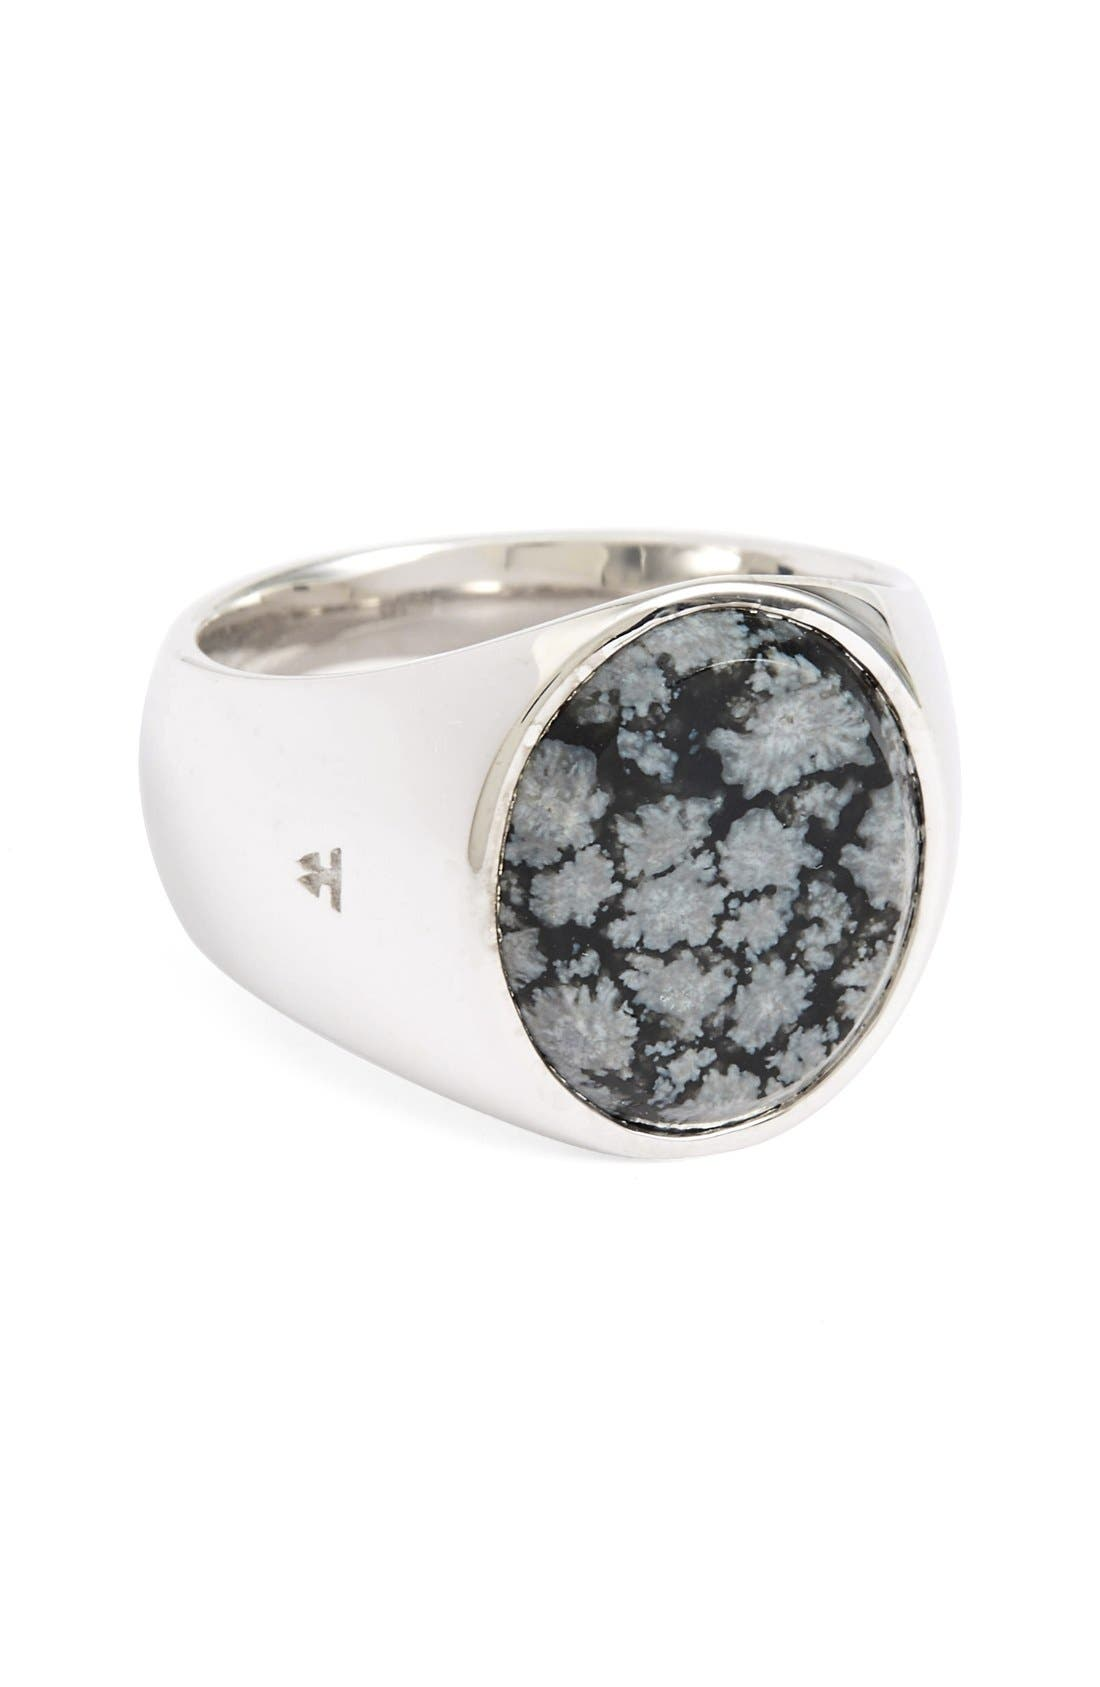 Main Image - Tom Wood Snowflake Obsidian Oval Signet Ring